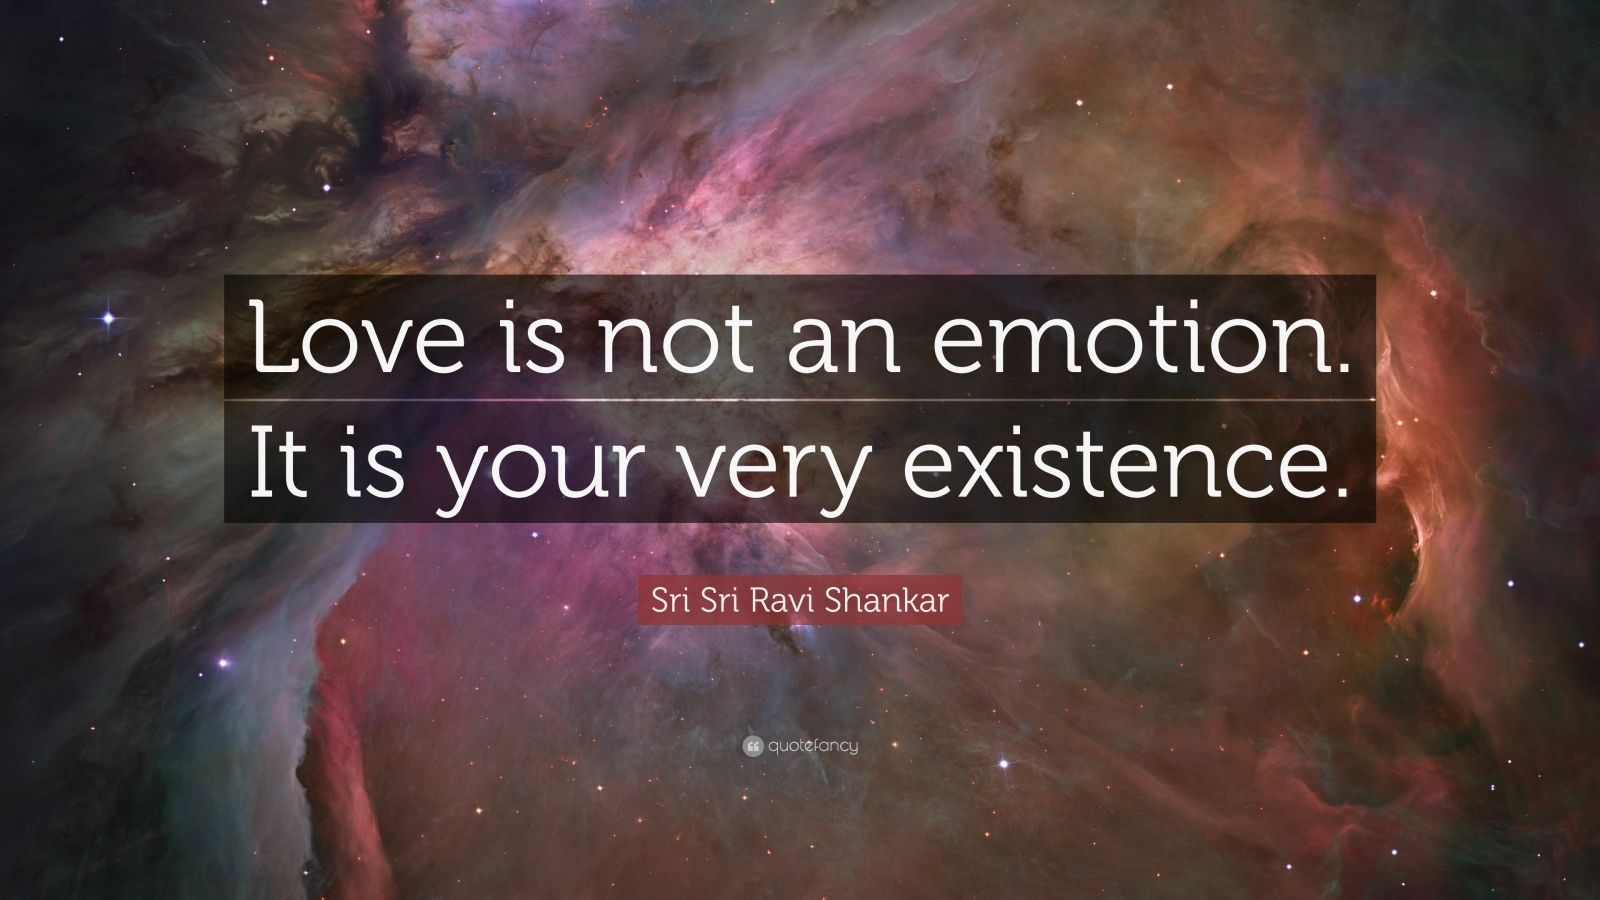 Top Wallpaper Name Rupesh - 29641-Sri-Sri-Ravi-Shankar-Quote-Love-is-not-an-emotion-It-is-your-very  Gallery_934765.jpg